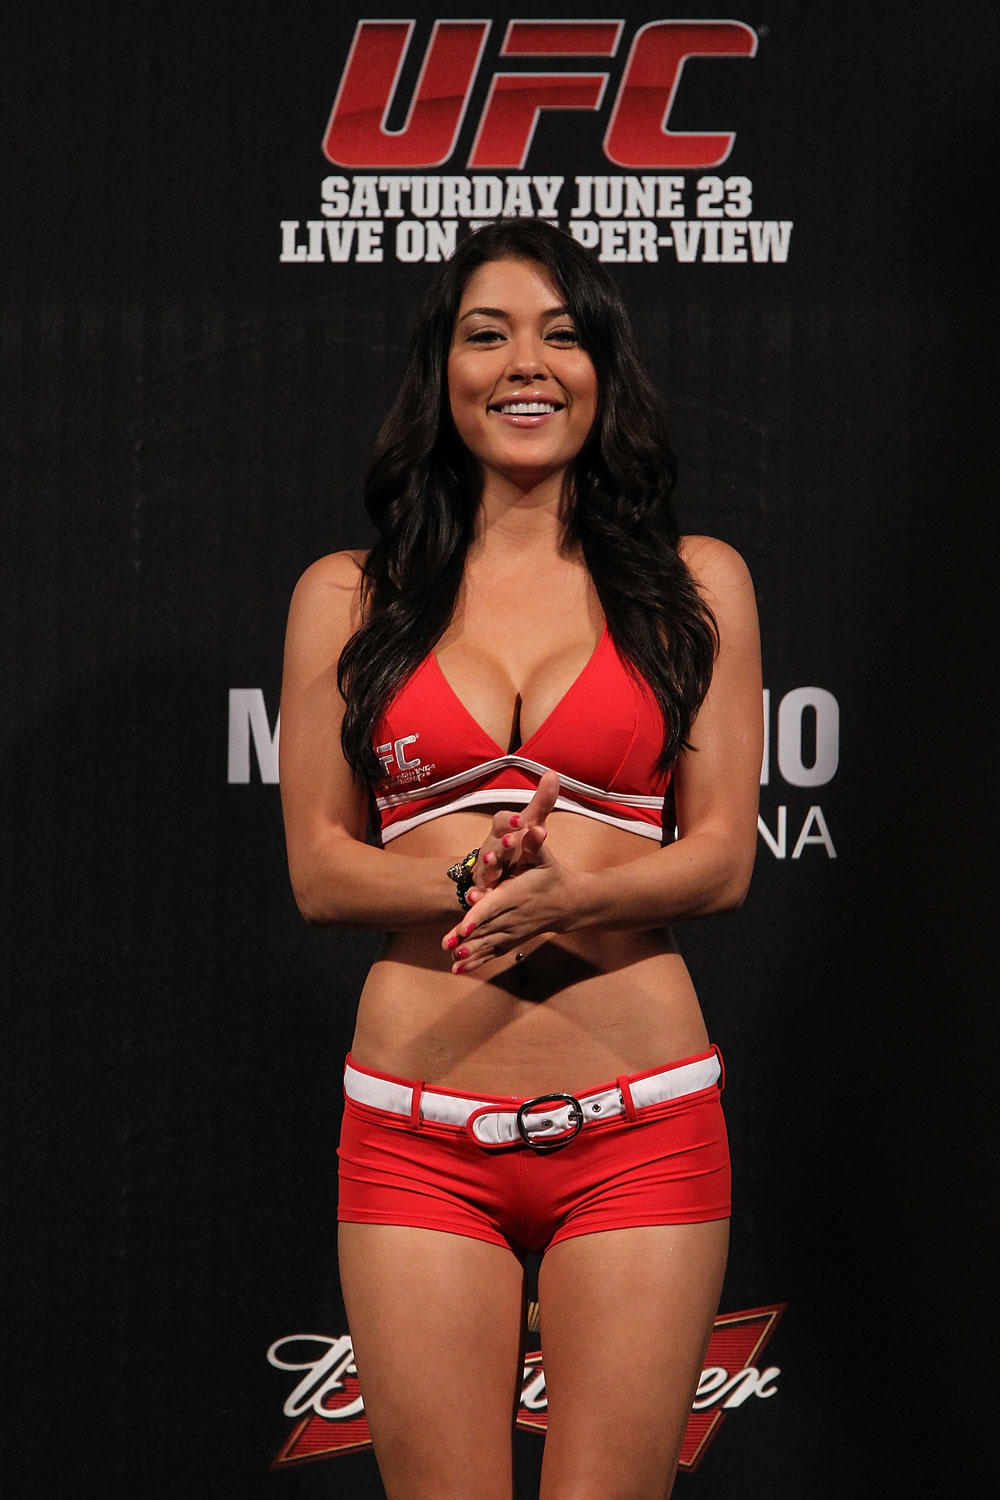 BELO HORIZONTE, BRAZIL - JUNE 22:   UFC Octagon Girl Arianny Celeste attends the UFC 147 weigh in at Est&Atilde;&iexcl;dio Jornalista Felipe Drummond on June 22, 2012 in Belo Horizonte, Brazil.  (Photo by Josh Hedges/Zuffa LLC/Zuffa LLC via Getty Images)